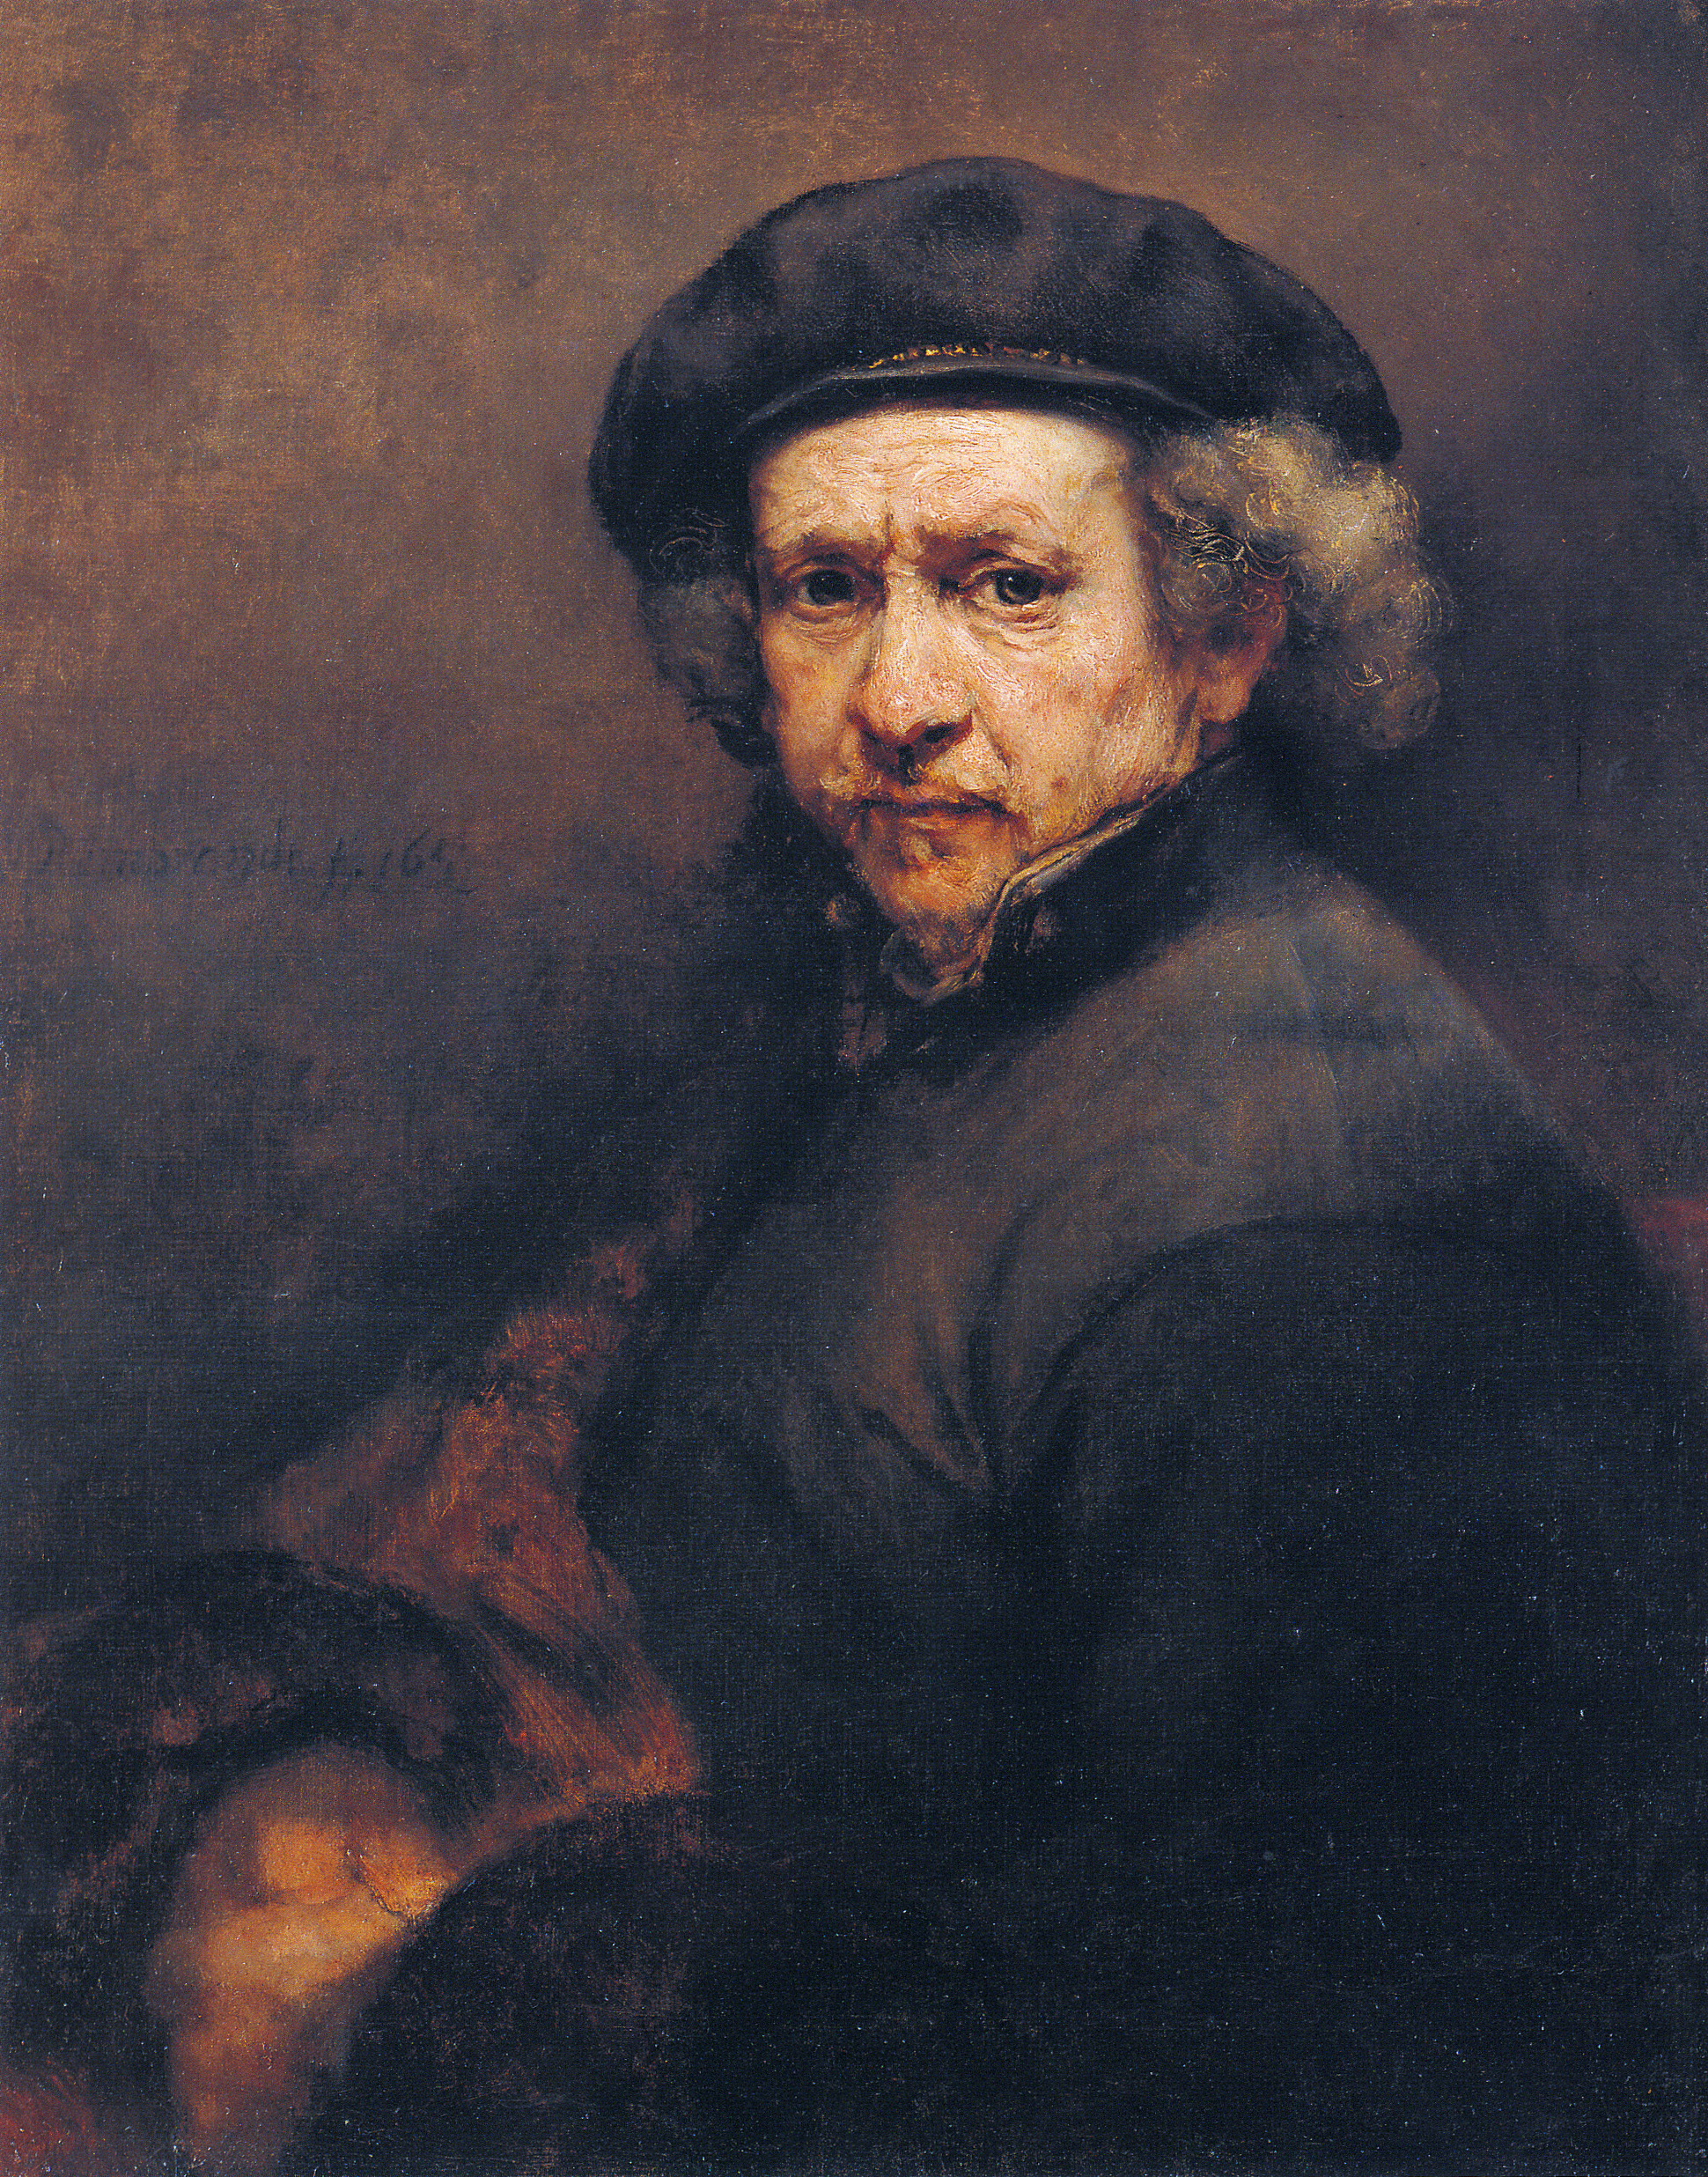 Rembrandt_self_portrait.jpg